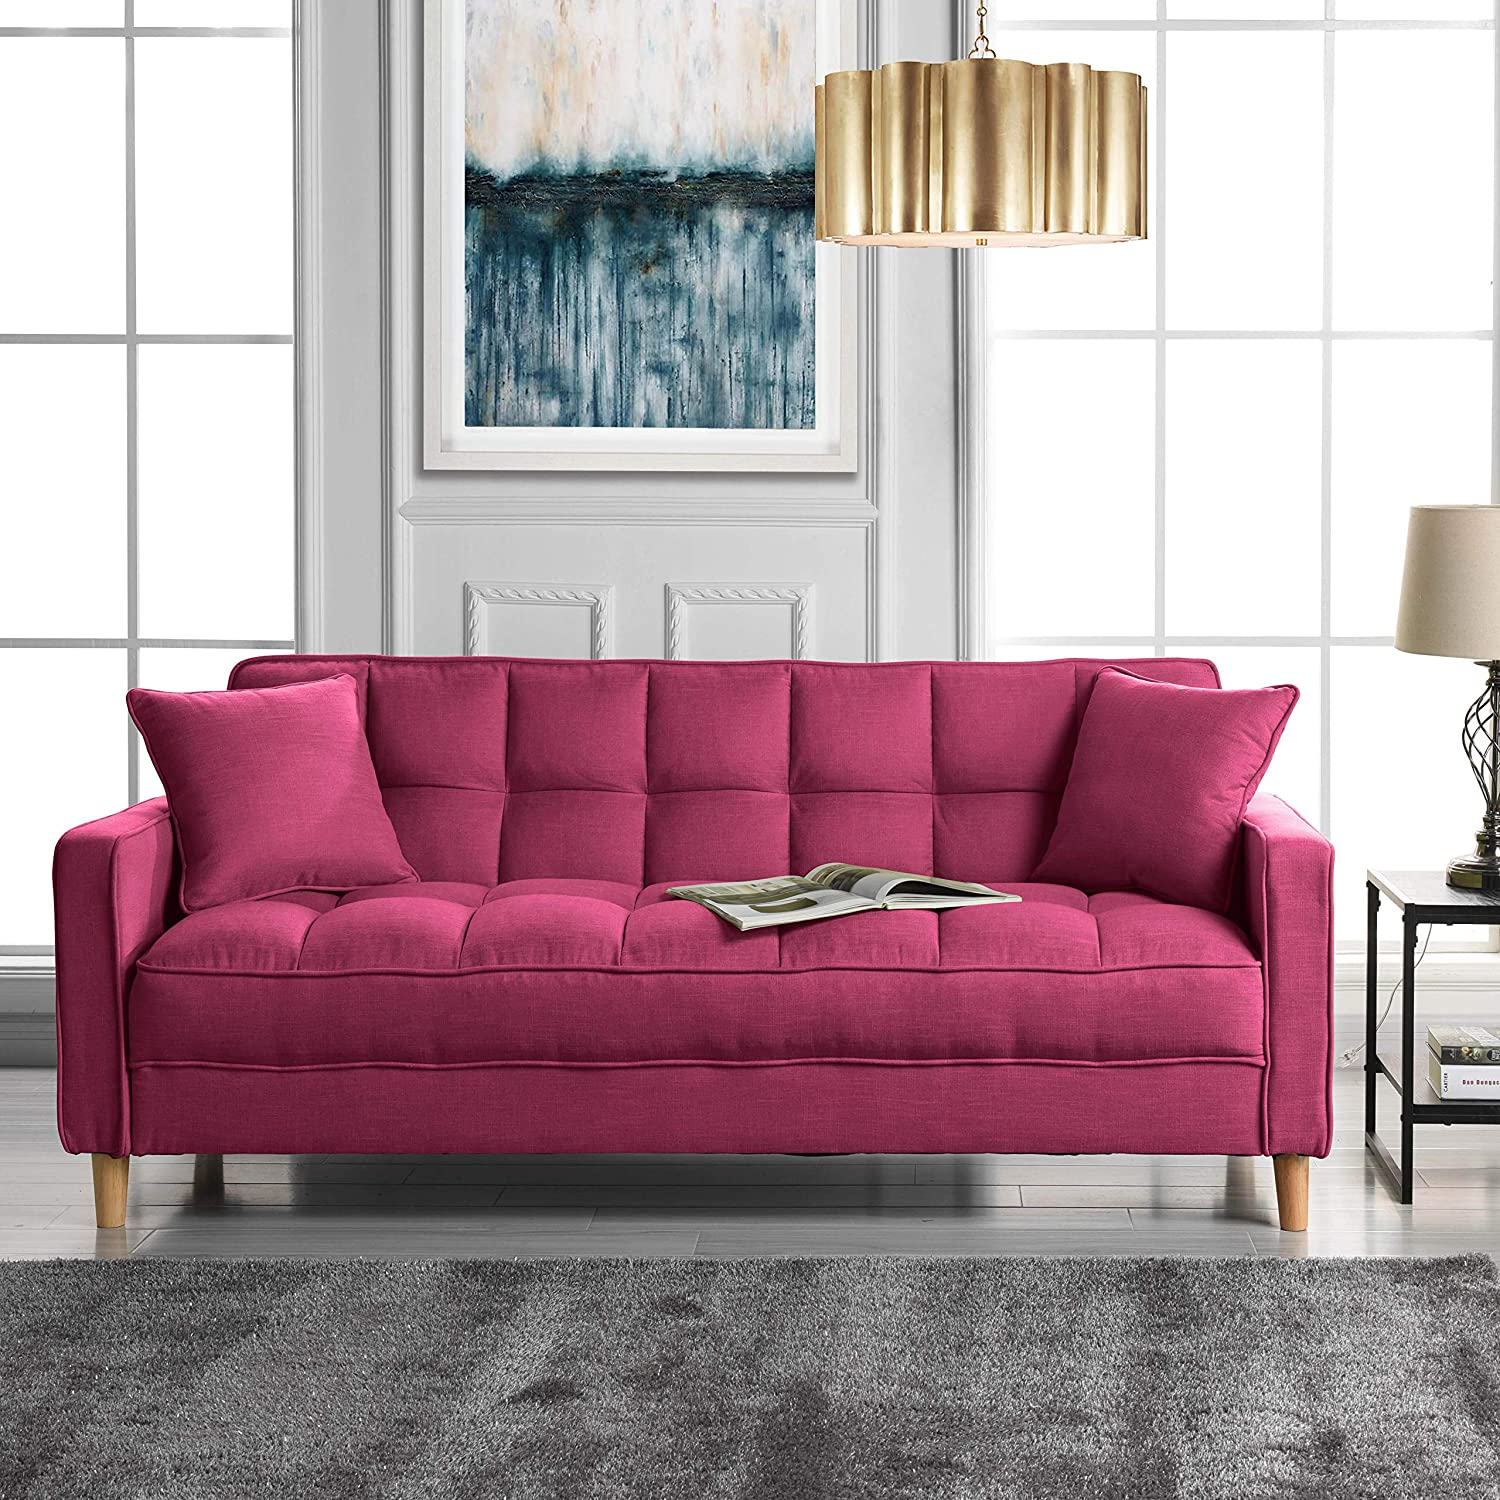 Awe Inspiring Divano Roma Furniture Modern Linen Fabric Tufted Small Space Living Room Sofa Couch Hot Pink Interior Design Ideas Gentotthenellocom